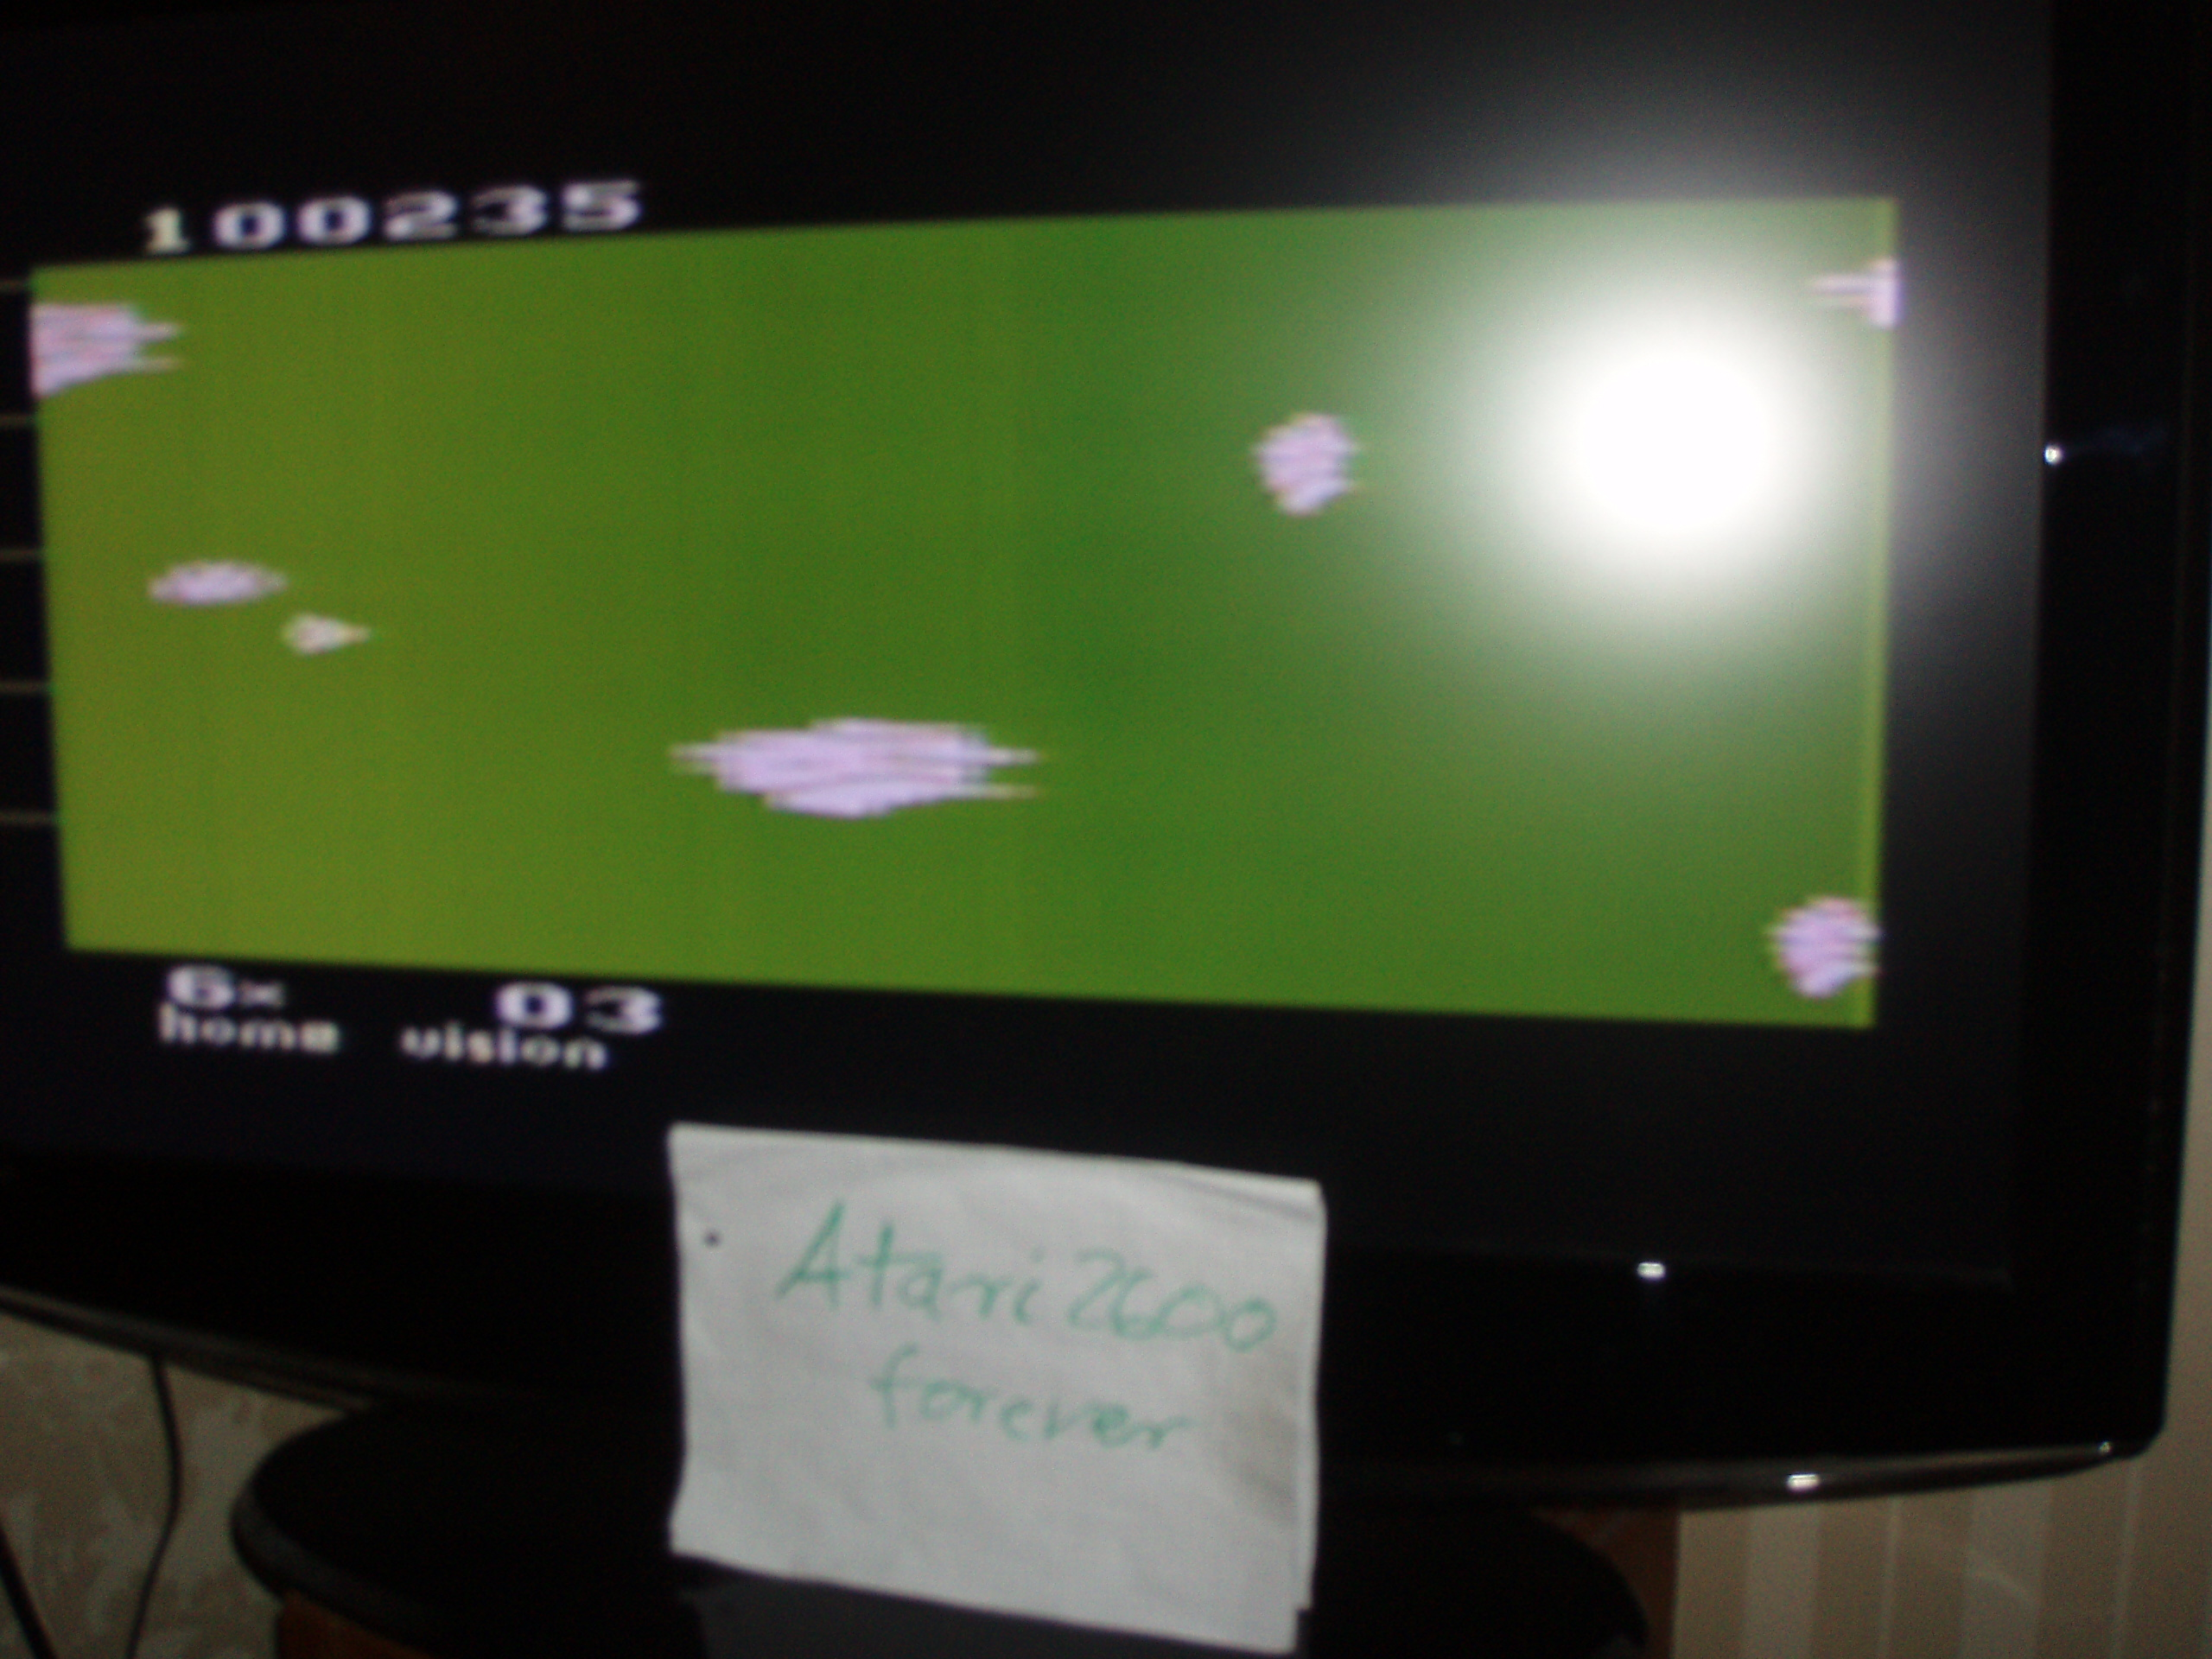 atari2600forever: Astrowar / Meteor Defense / Kampf im Asteroiden-Gürtel (Atari 2600 Novice/B) 100,235 points on 2017-05-12 03:37:46